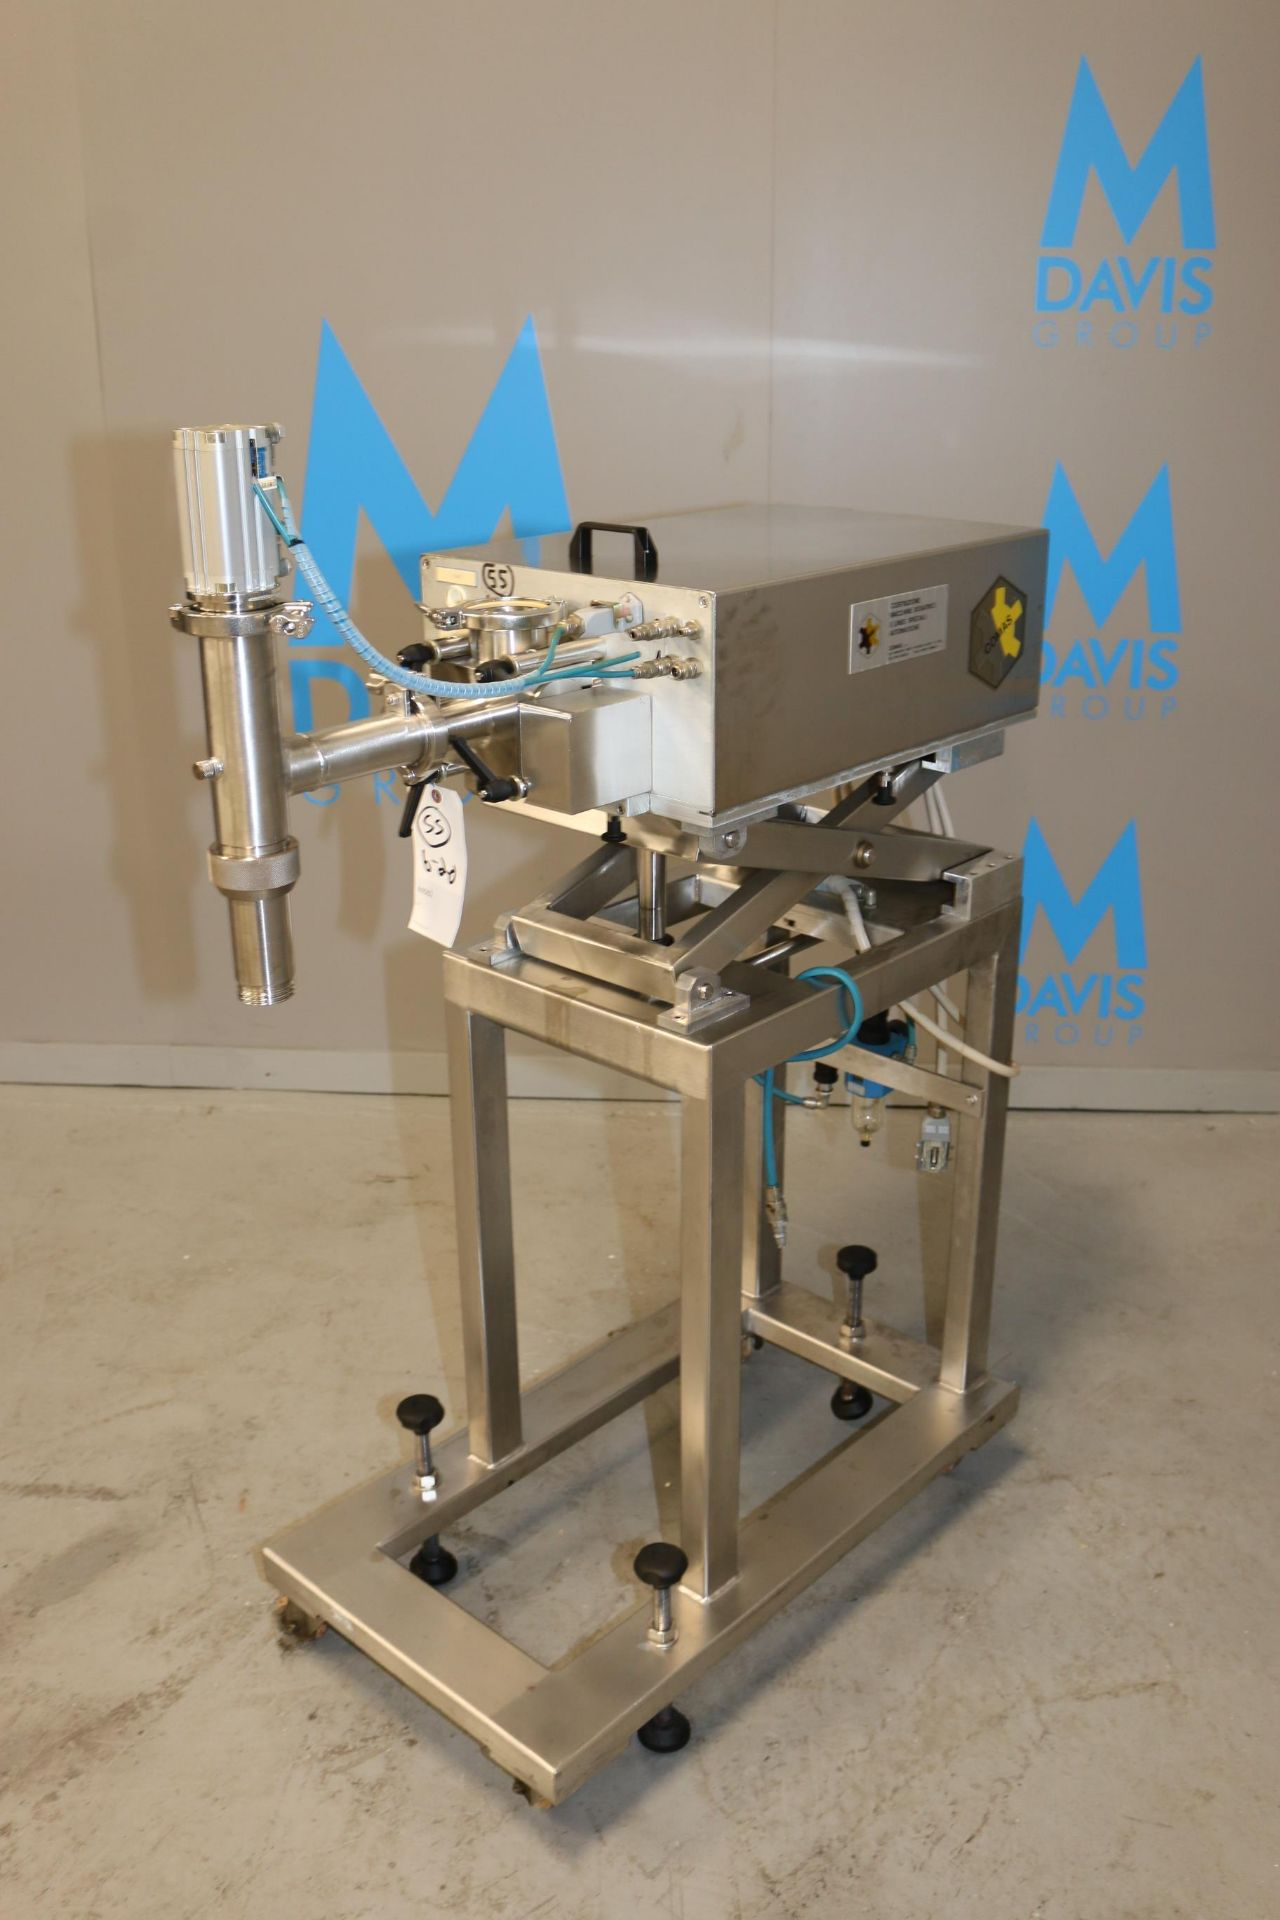 Lot 35 - Comas S/S Dosing Pump, Matricola: 2489, Year: 1996, with Adjustable S/S Scissor Frame, with S/S